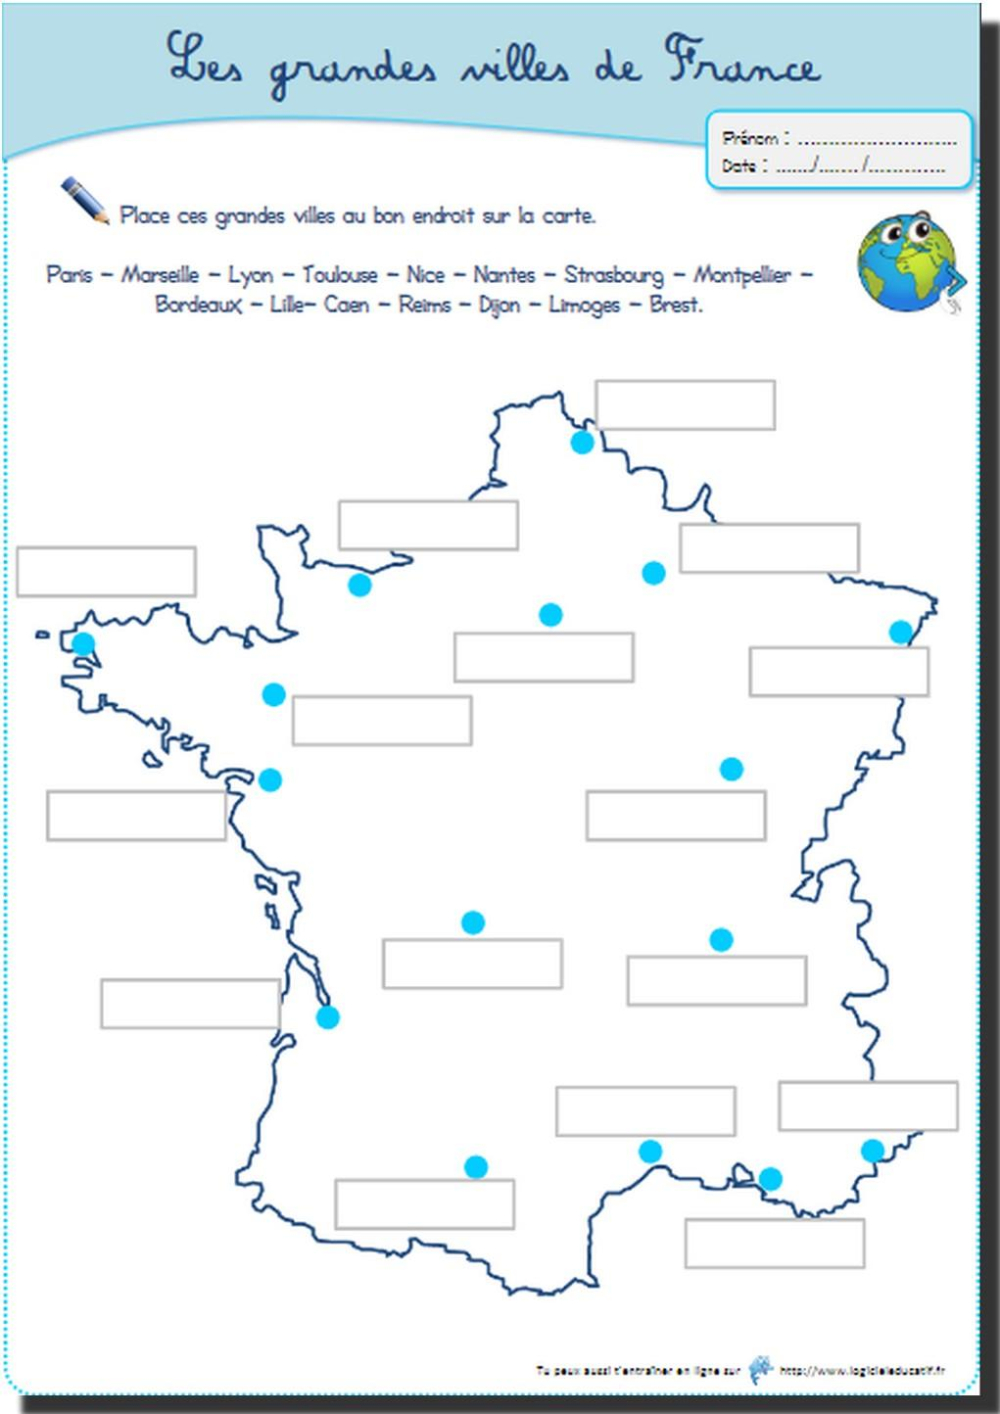 4 Fichiers À Télécharger Pour L'instruction En Maths Et En destiné Carte De France Ce2